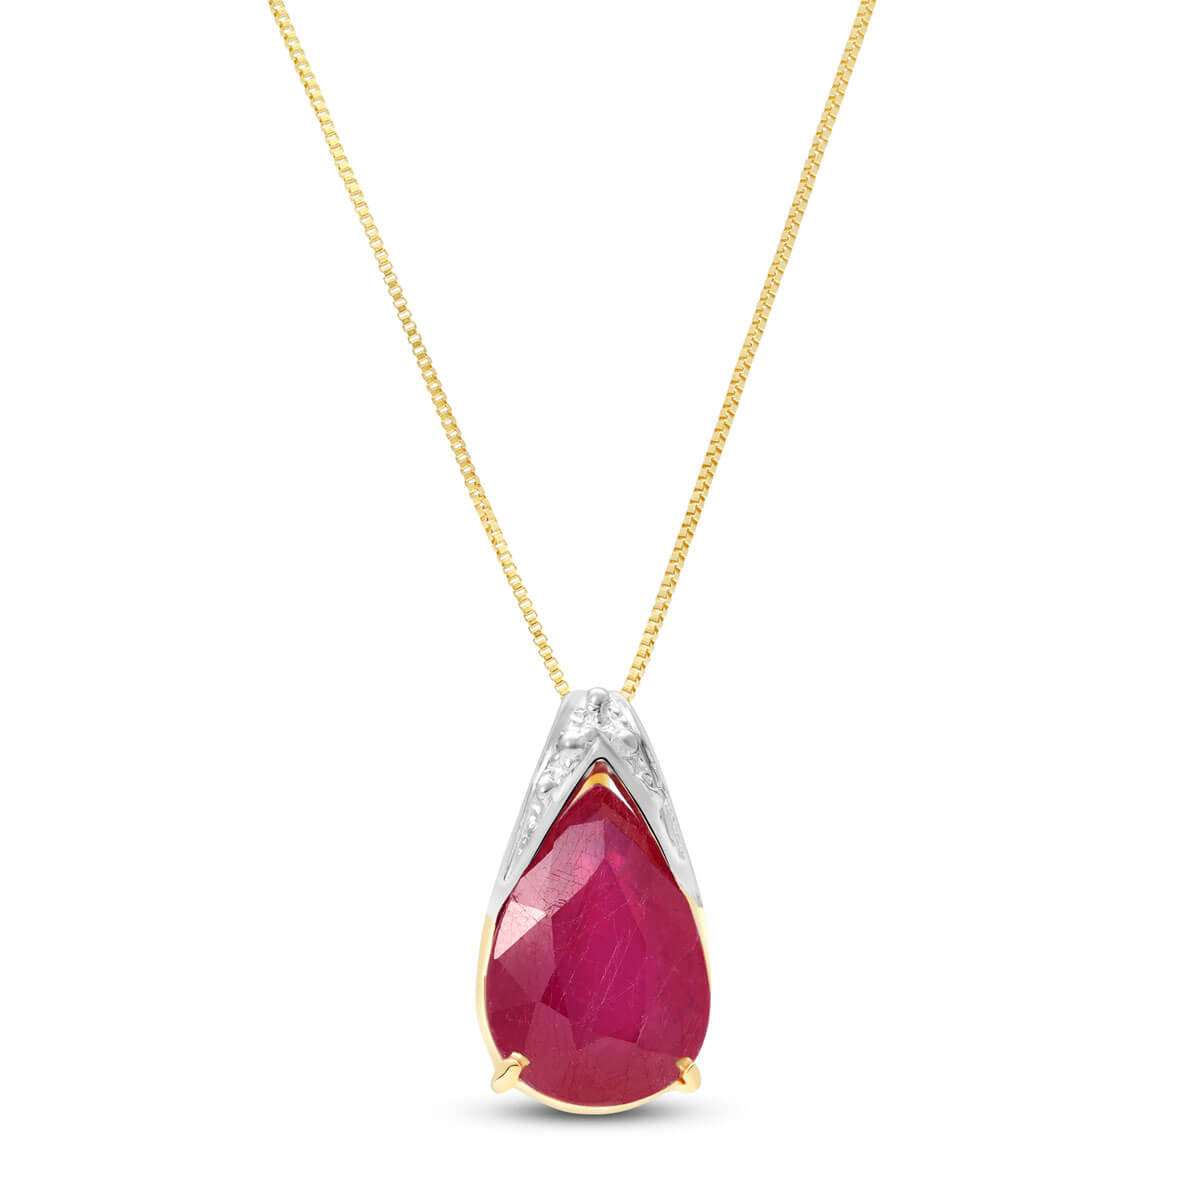 Ruby Snowcap Pendant Necklace 5 ct in 9ct Gold